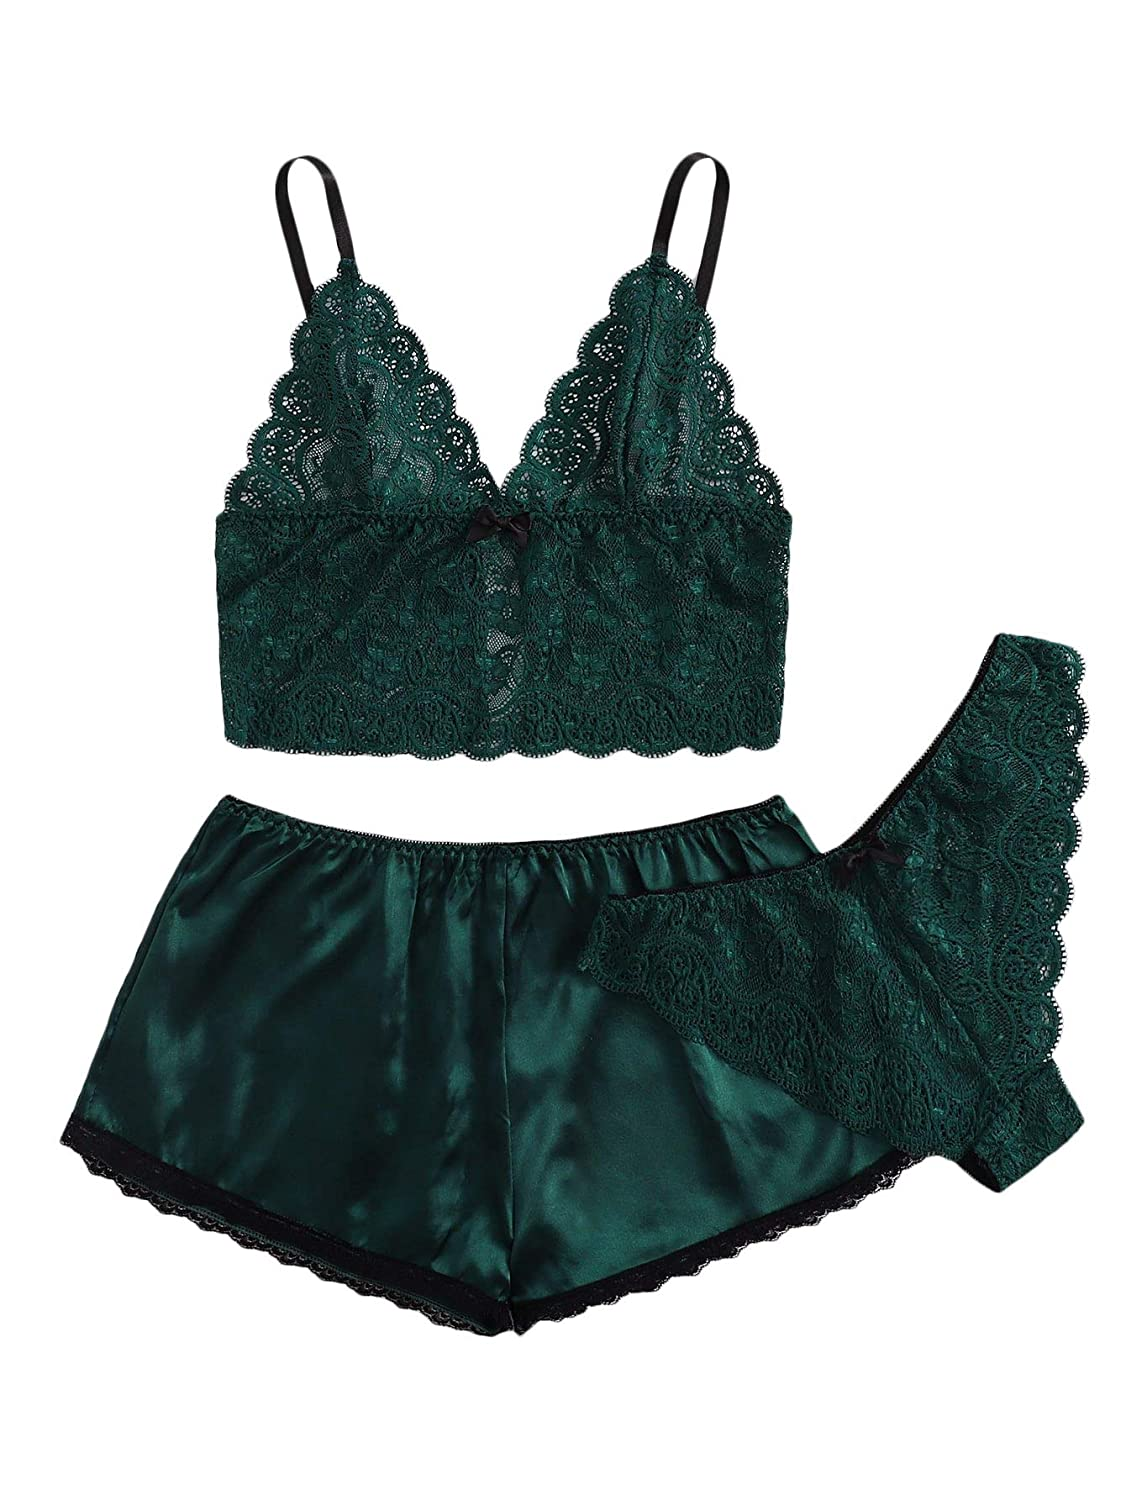 Army Green SweatyRocks Women's Lace Cami Top with Shorts with Panties 3 Piece Set Sexy Lingerie Pajama Set Sleepwear